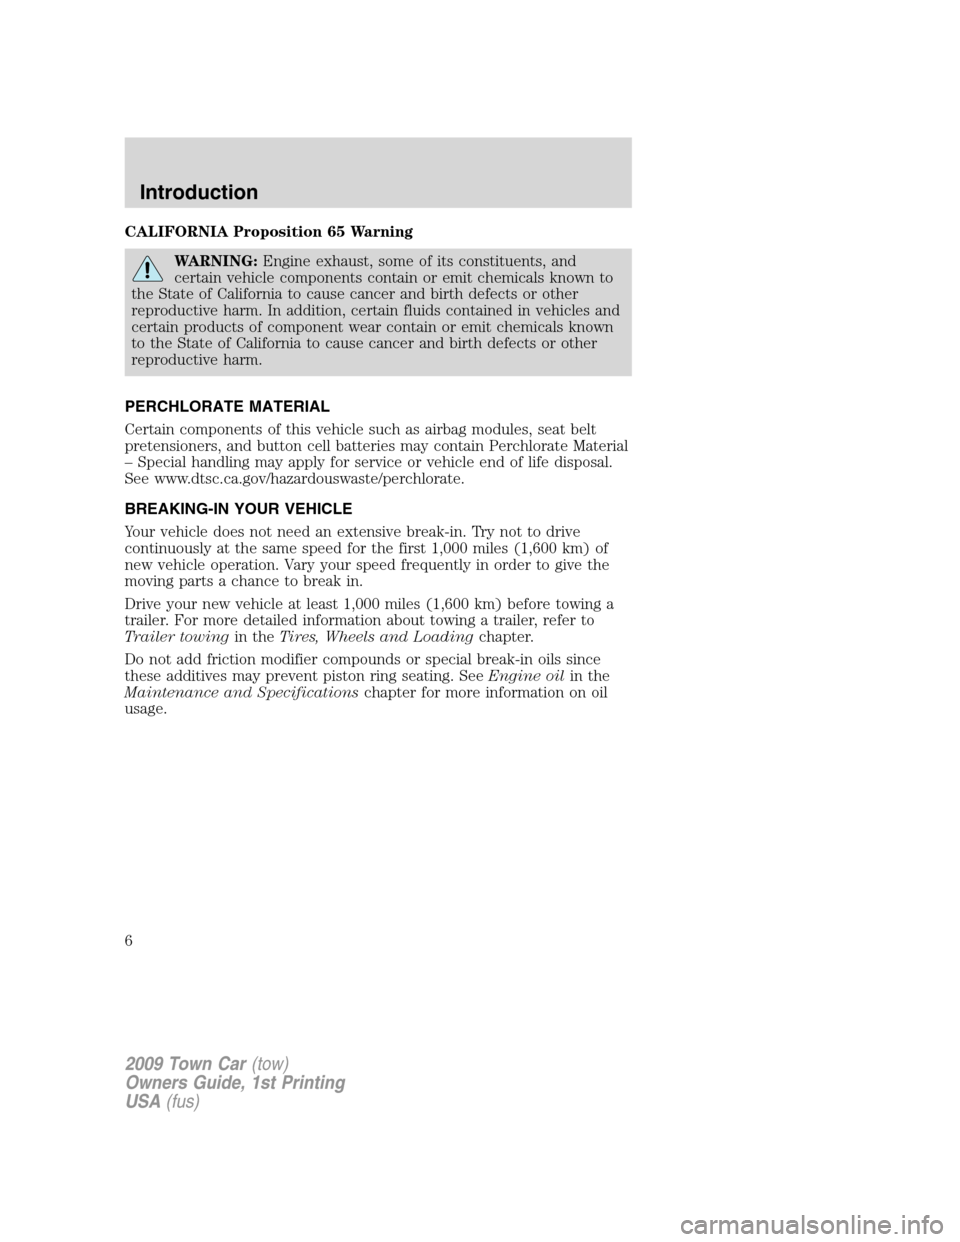 LINCOLN TOWN CAR 2009  Owners Manual, Page 6